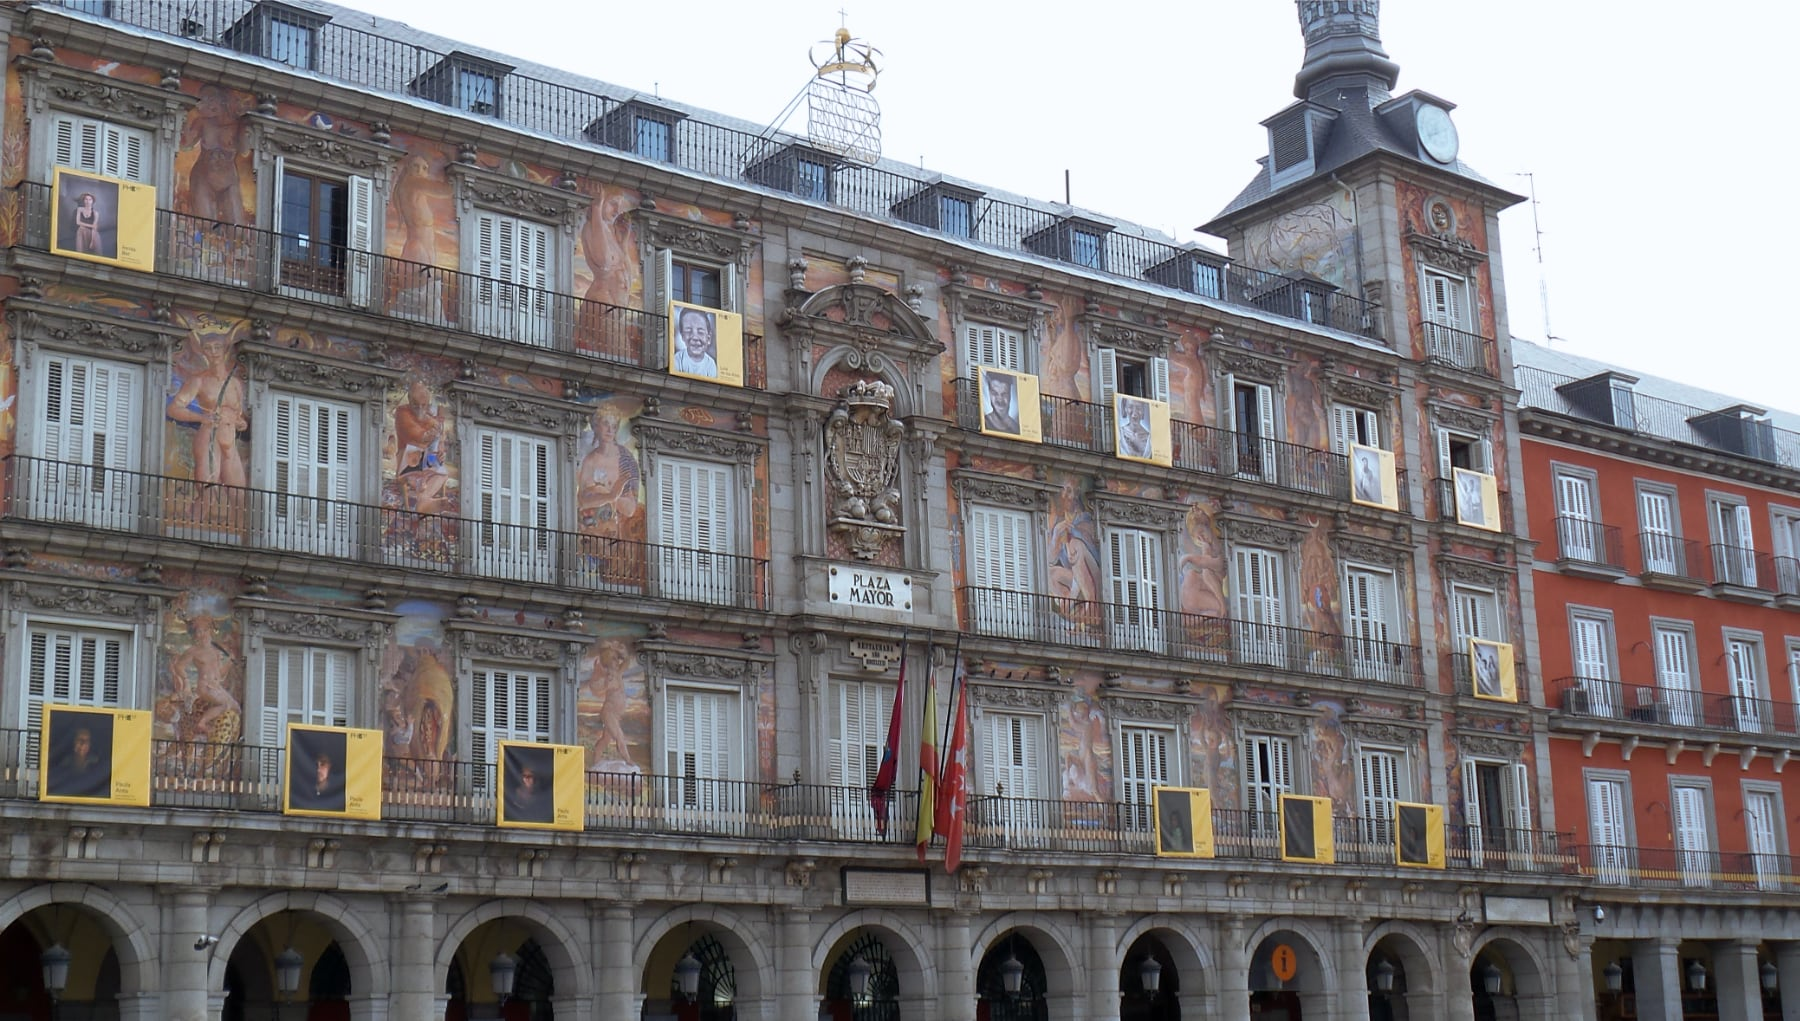 Plaza Mayor in the heart of Madrid